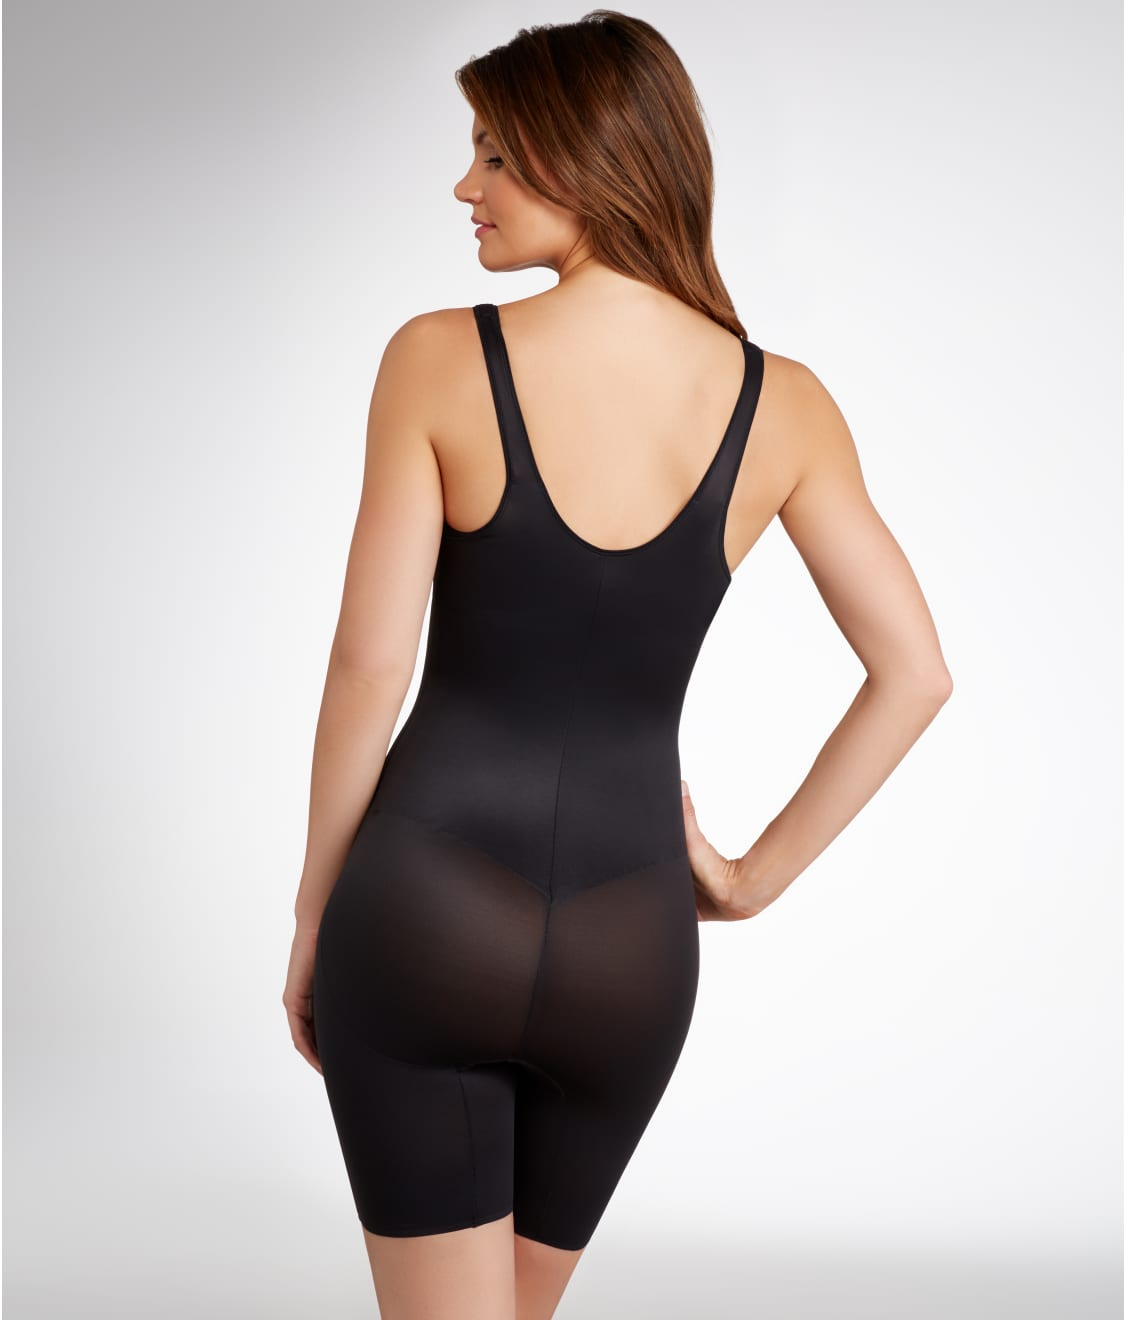 605510596a TC Fine Intimates Firm Control Open-Bust Torsette Thigh Slimmer ...